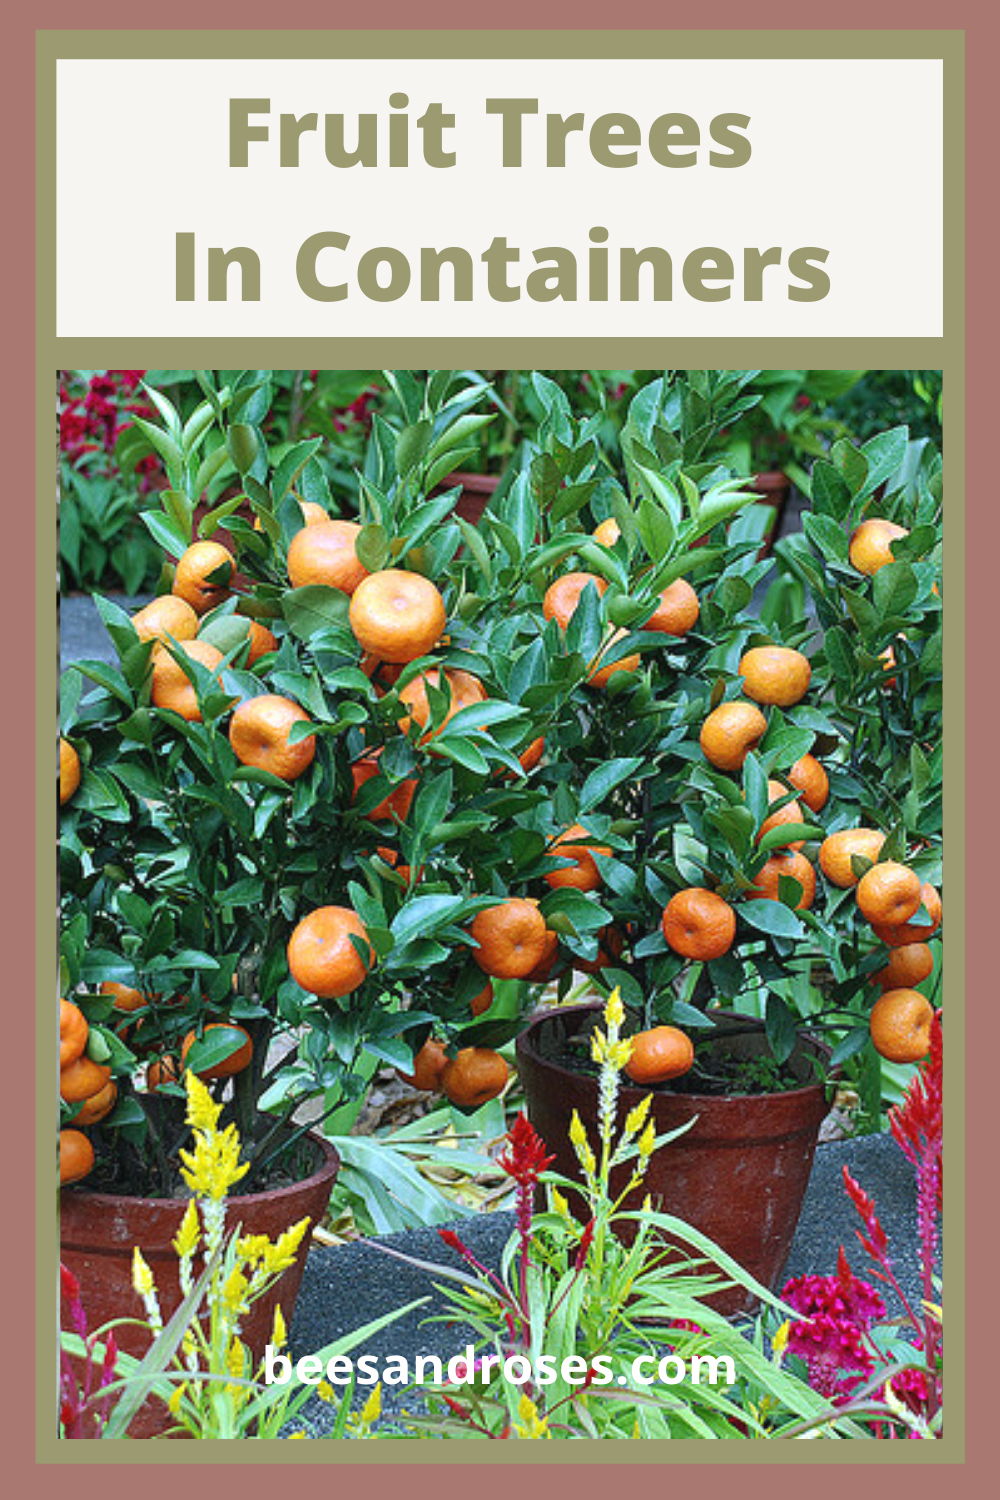 Fruit Trees In Containers Are Easy To Grow Growing Fruit Trees Growing Fruit Fruit Trees In Containers